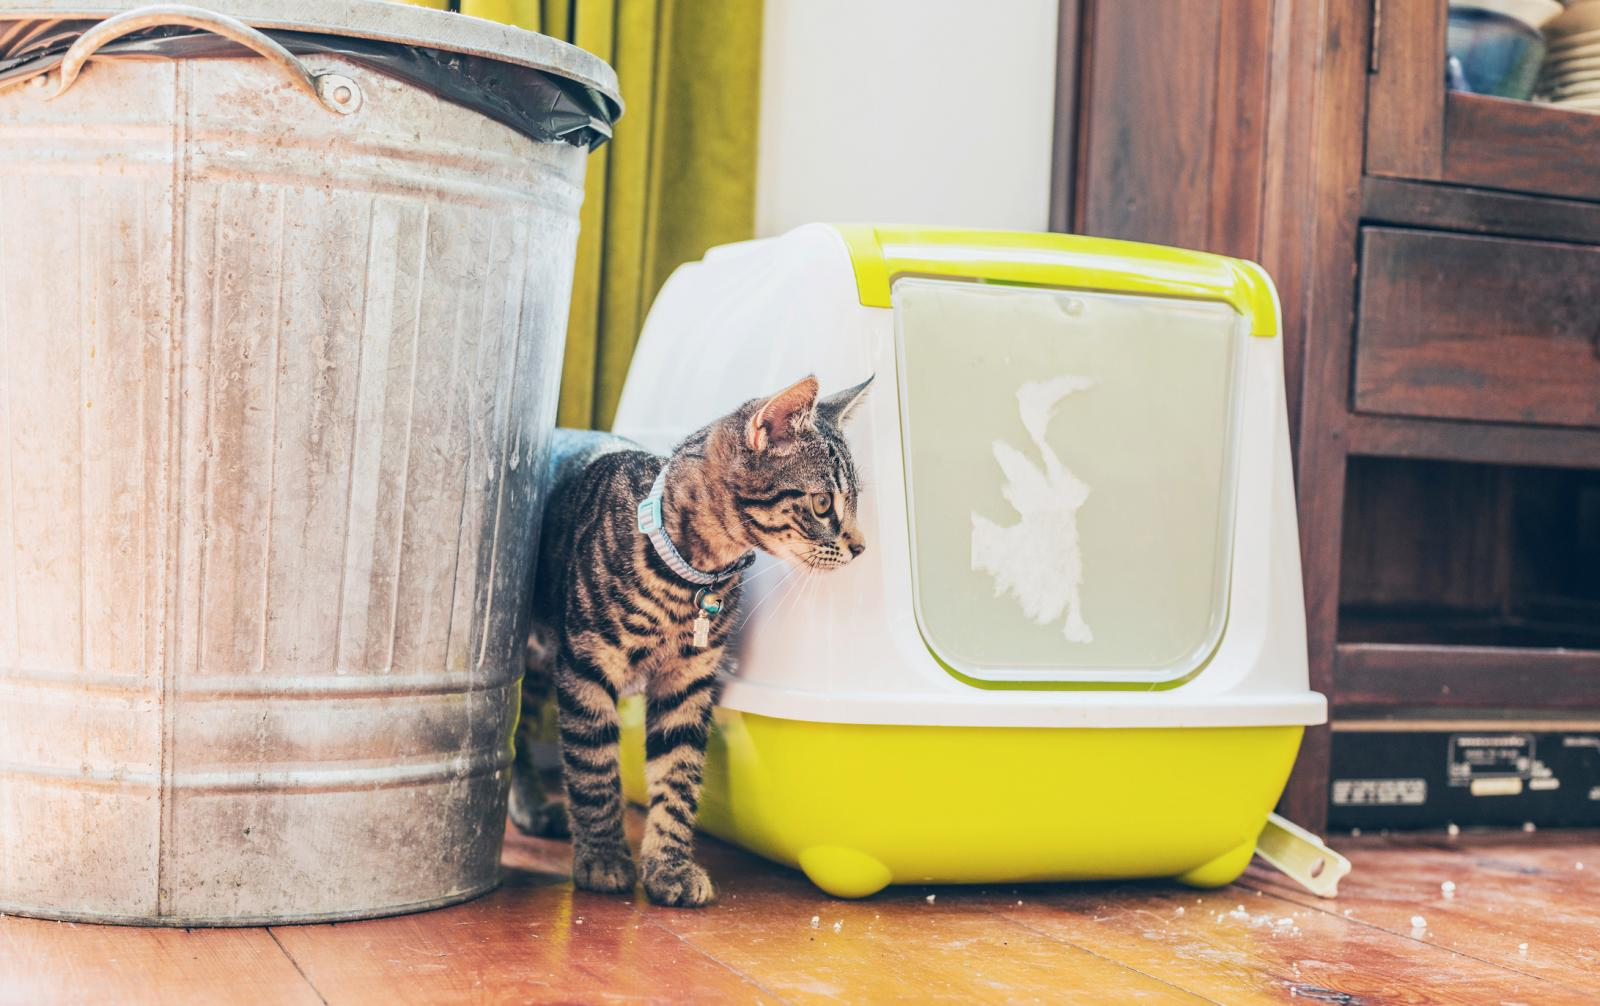 Cat standing alongside a litter box